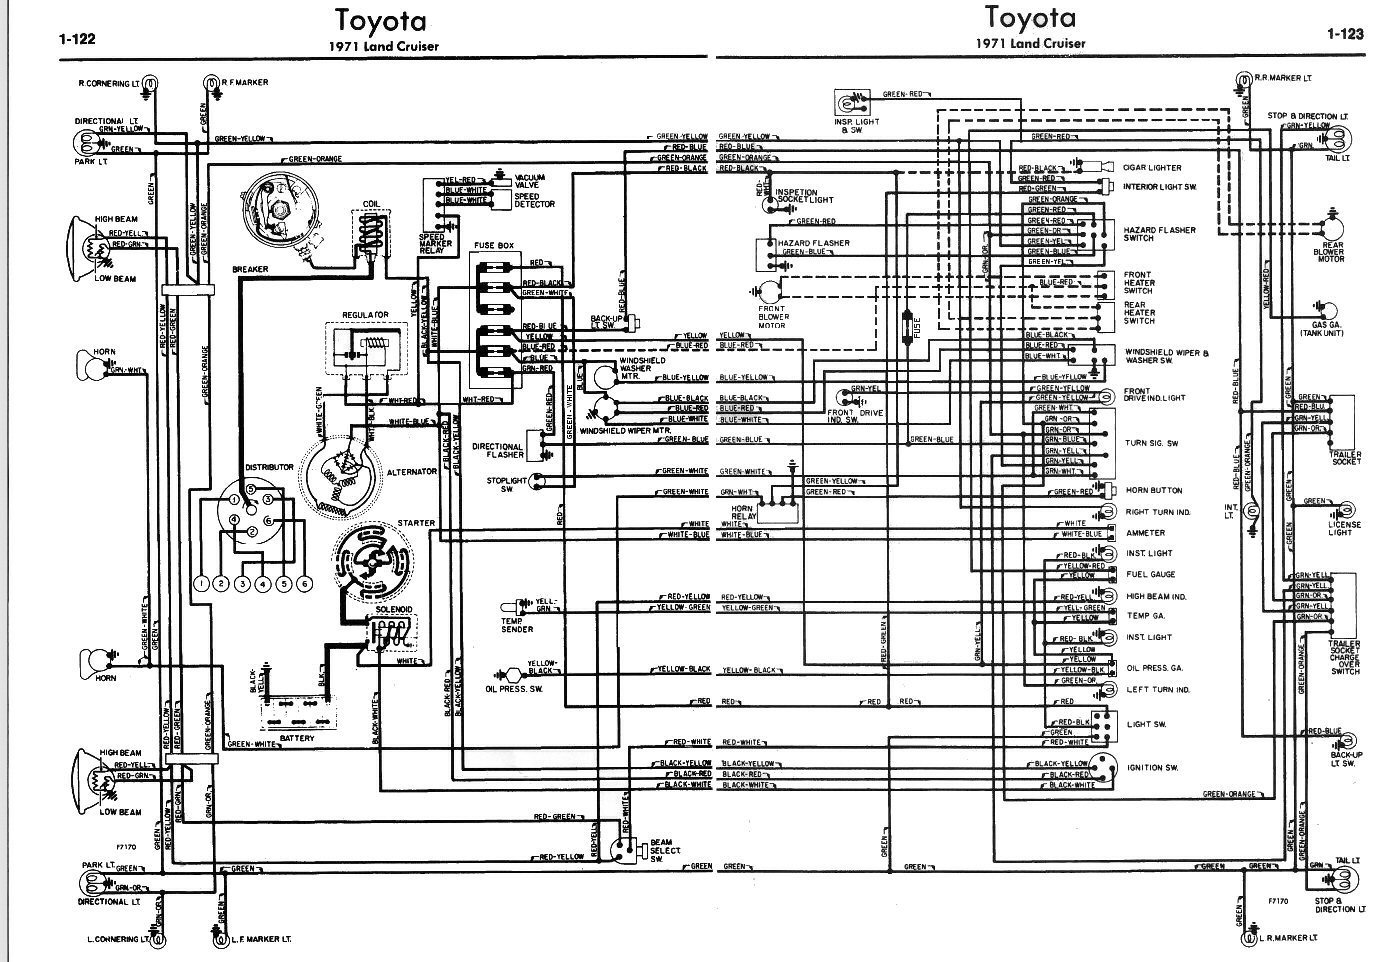 hight resolution of 1972 fj40 wiring harness wiring diagram 1972 fj40 wiring harness